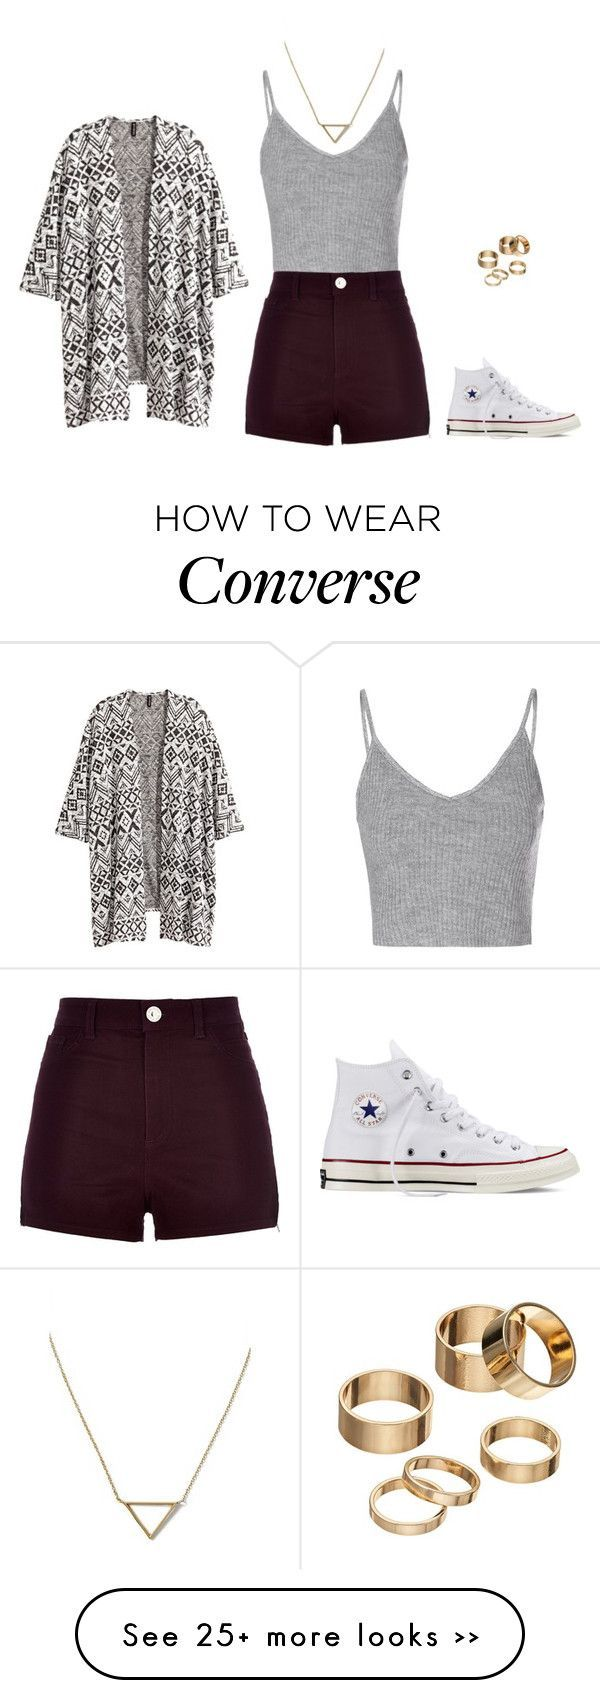 """Untitled #1"" by caitlinard on Polyvore featuring moda, Apt. 9, Banana Republic, Glamorous, River Island, Converse e H&M"